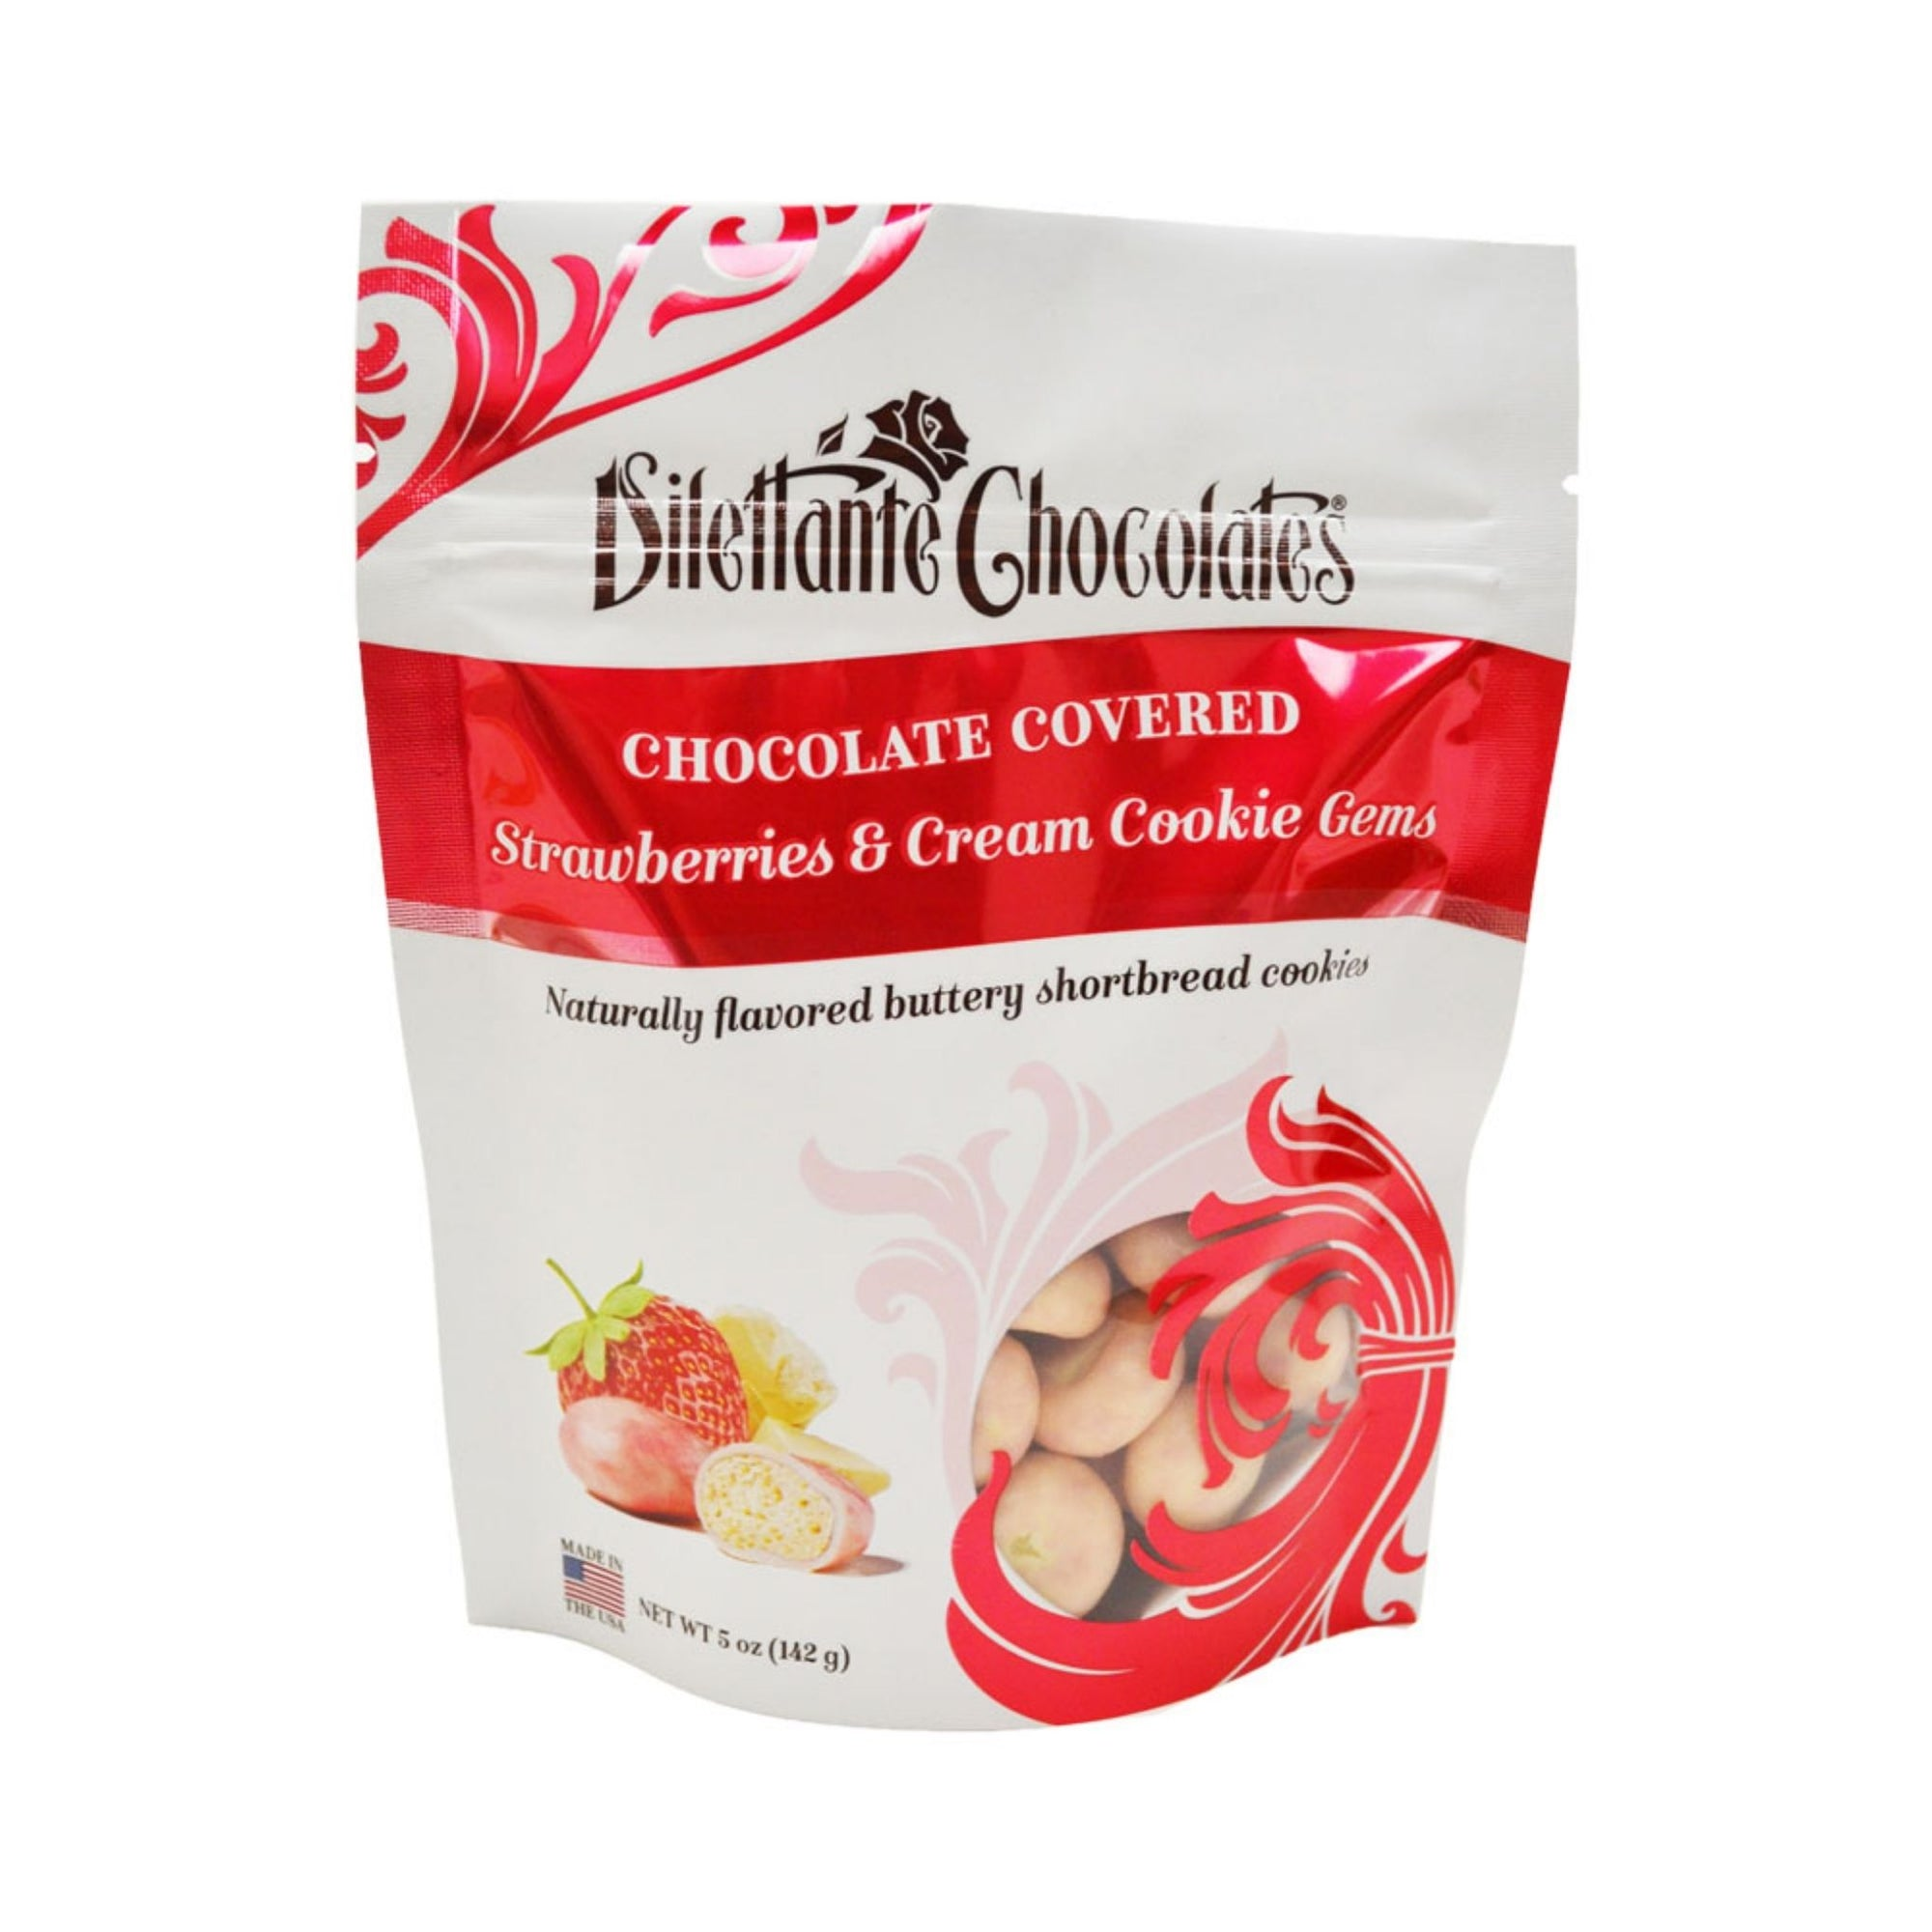 Dilettante Chocolates Chocolate-Covered Strawberries and Cream Cookie Gems Naturally Flavored Buttery Shortbread Cookies